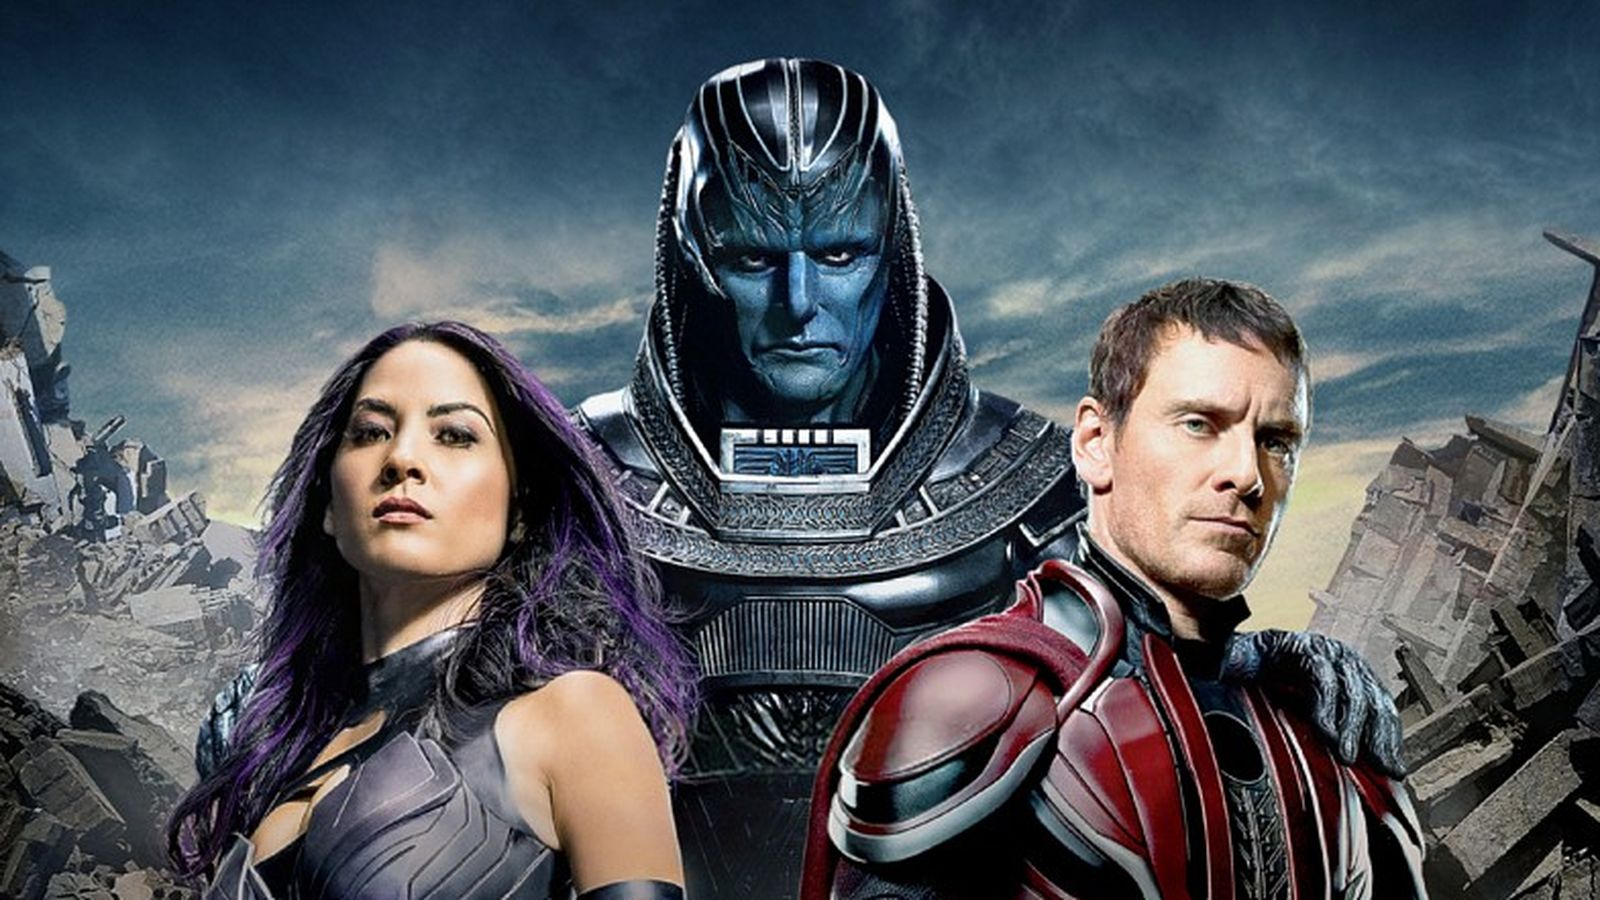 Podcast: Nerd Flu (S02E36) - X-Men: Apocalypse